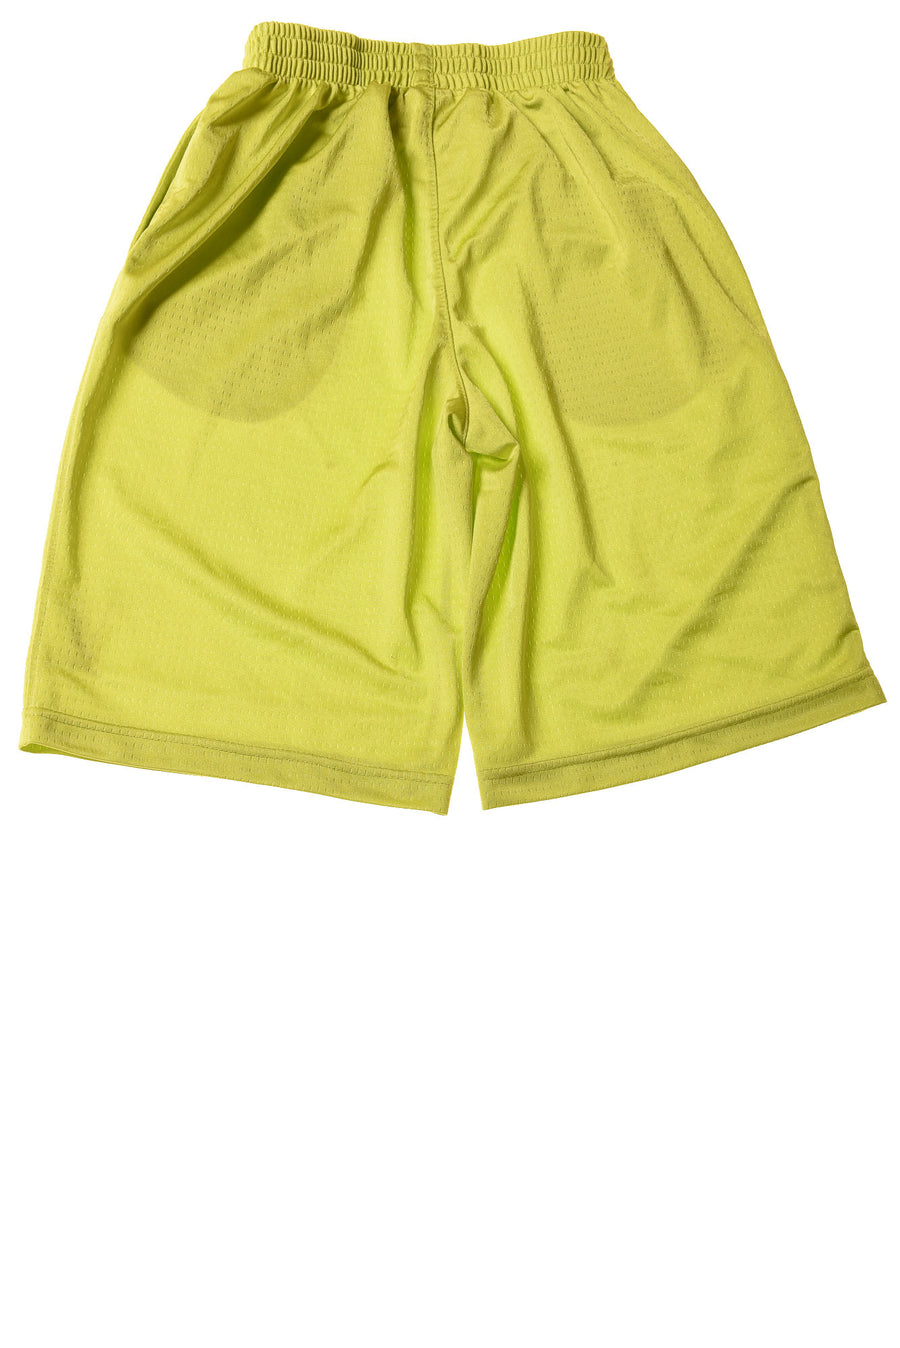 USED Jordan Boy's Shorts Large Green